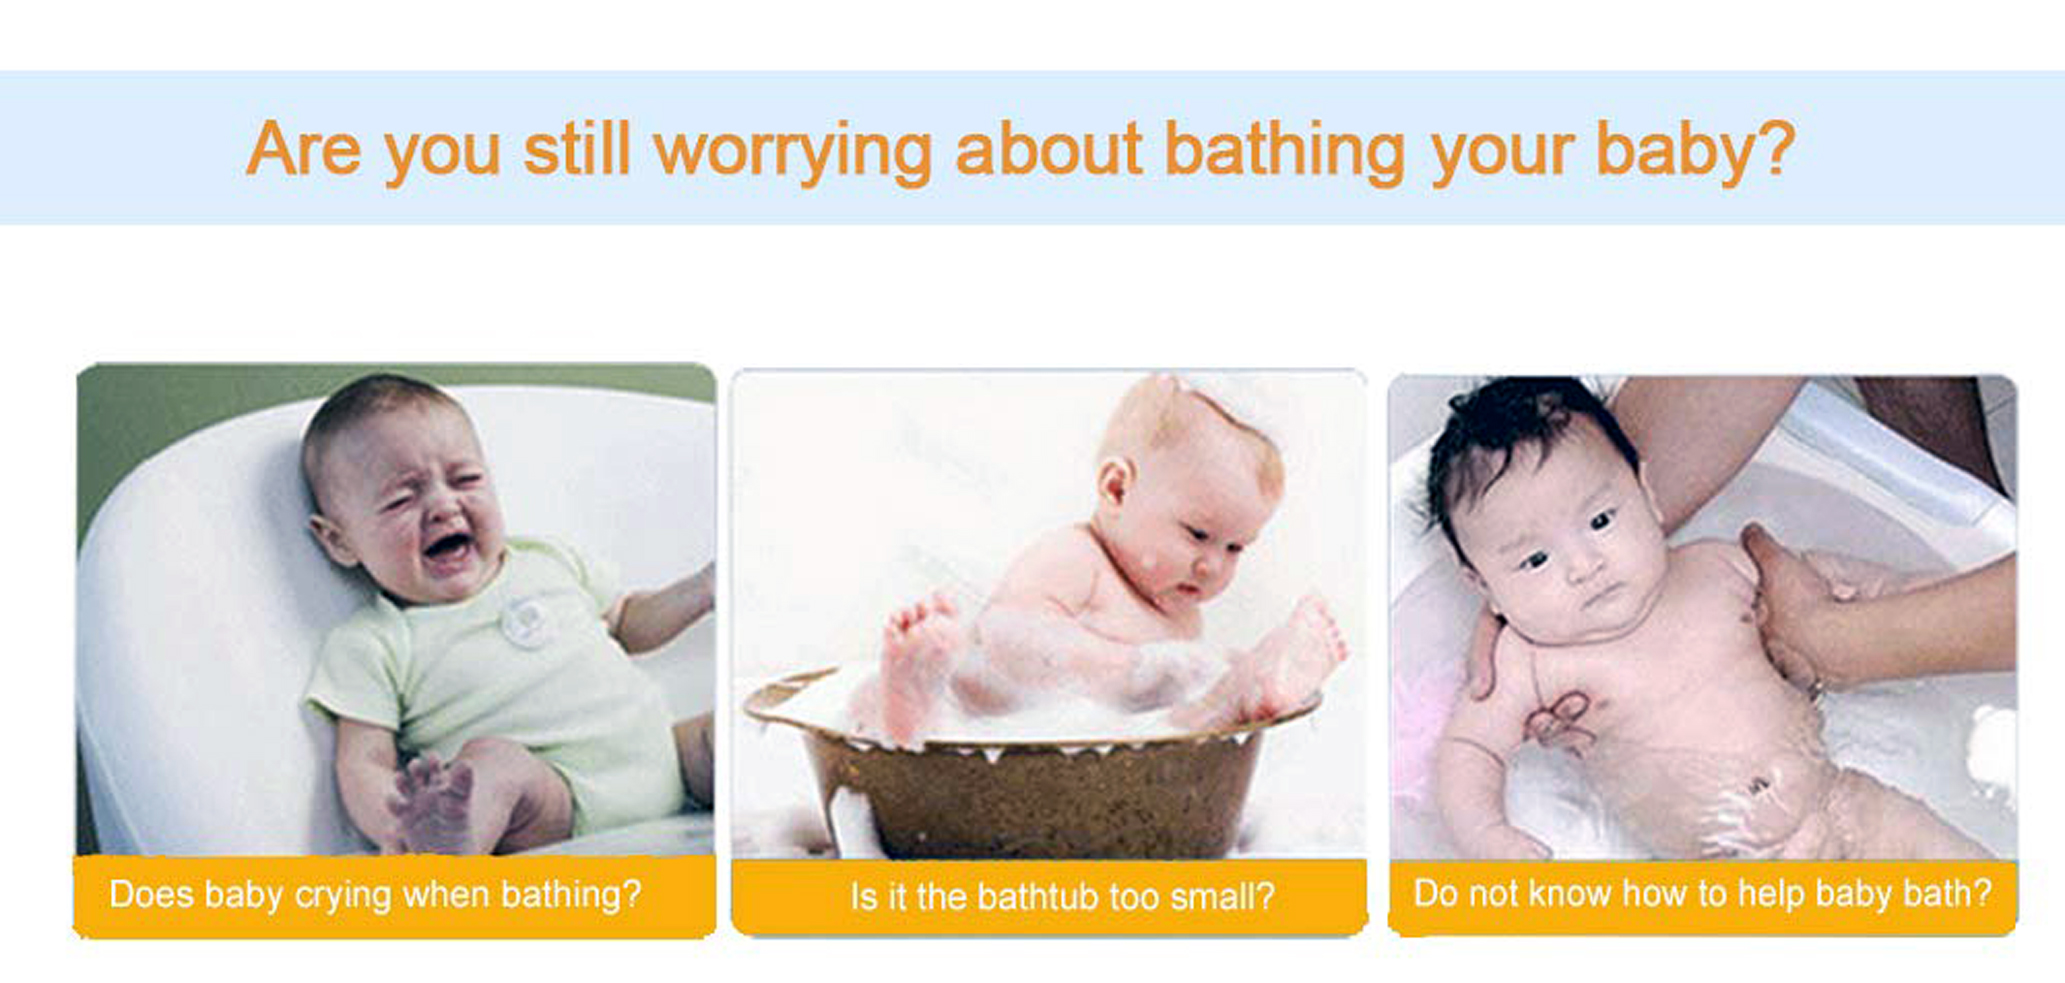 Clean the Bathtub for Next Use